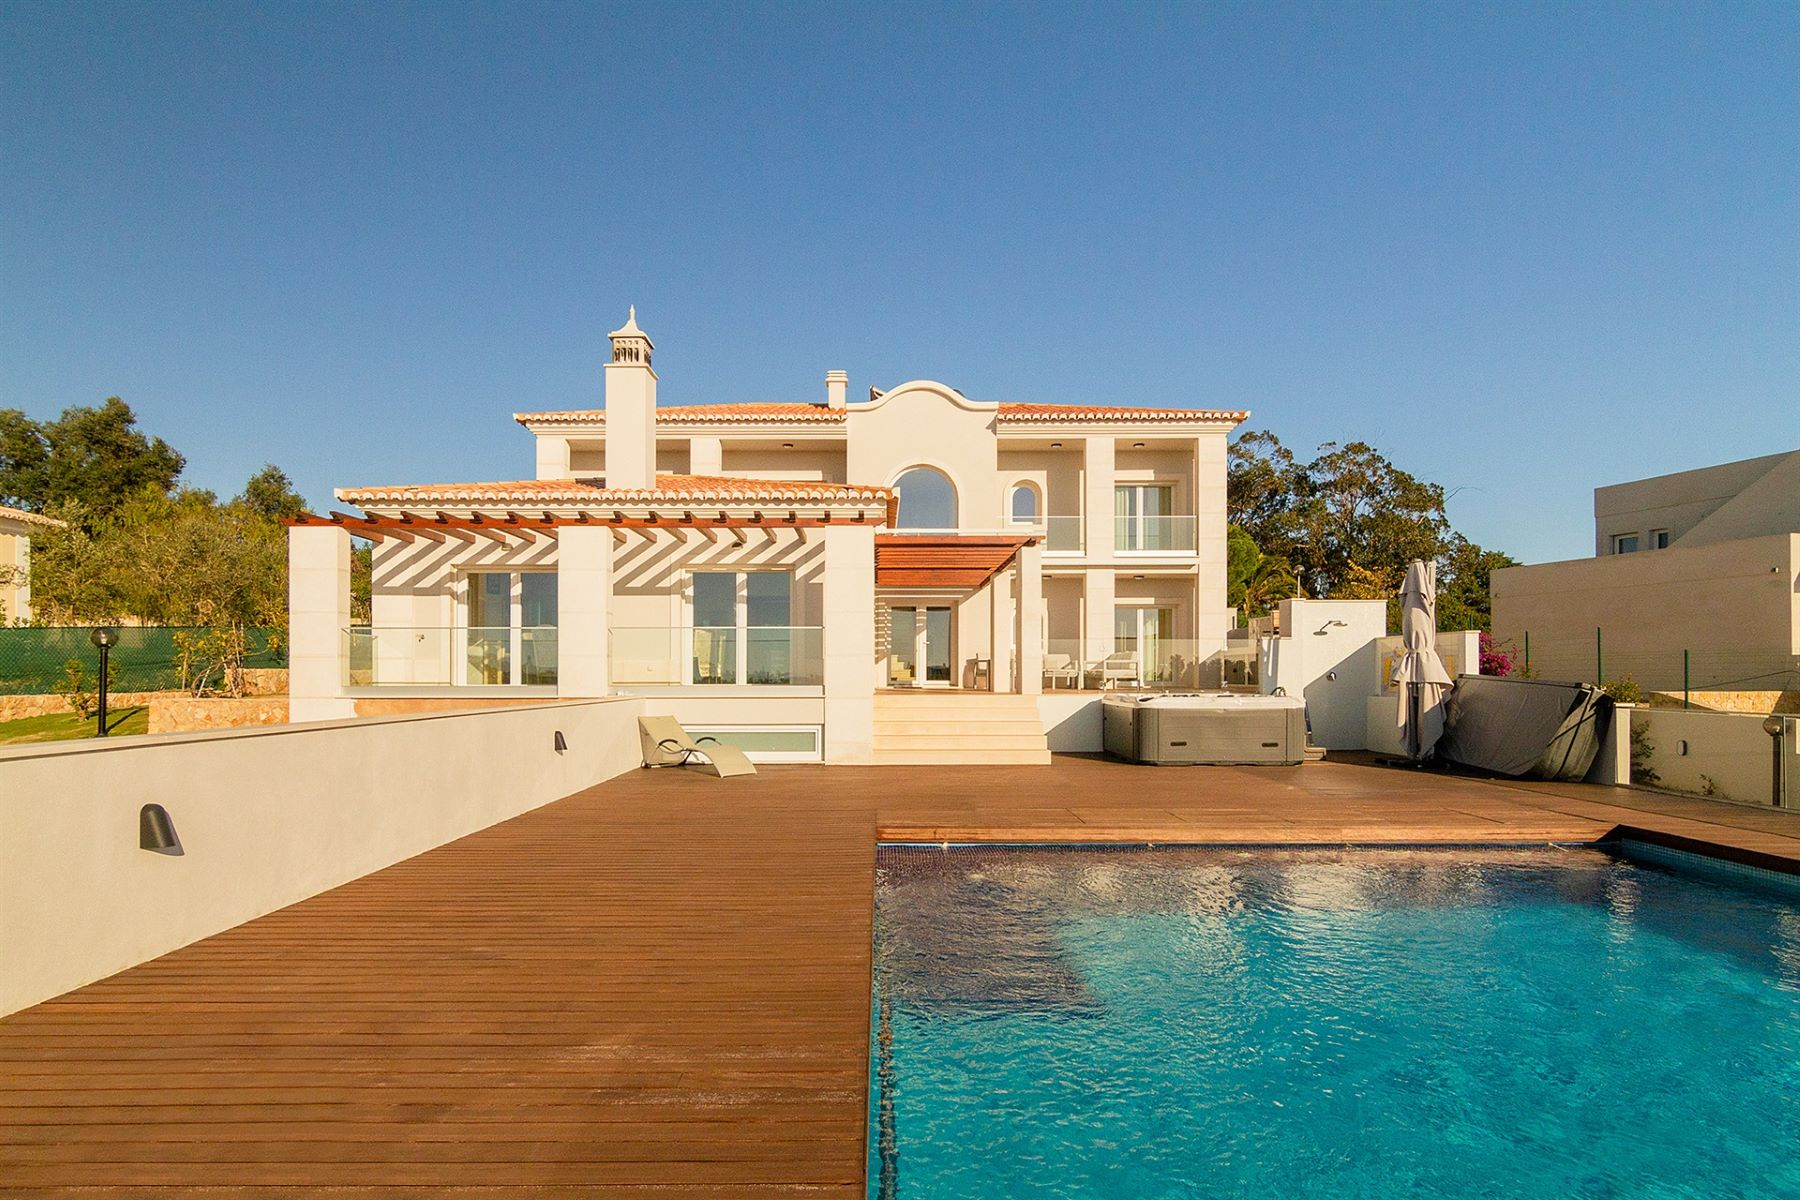 Single Family Homes for Sale at House, 4 bedrooms, for Sale Lagoa, Algarve Portugal